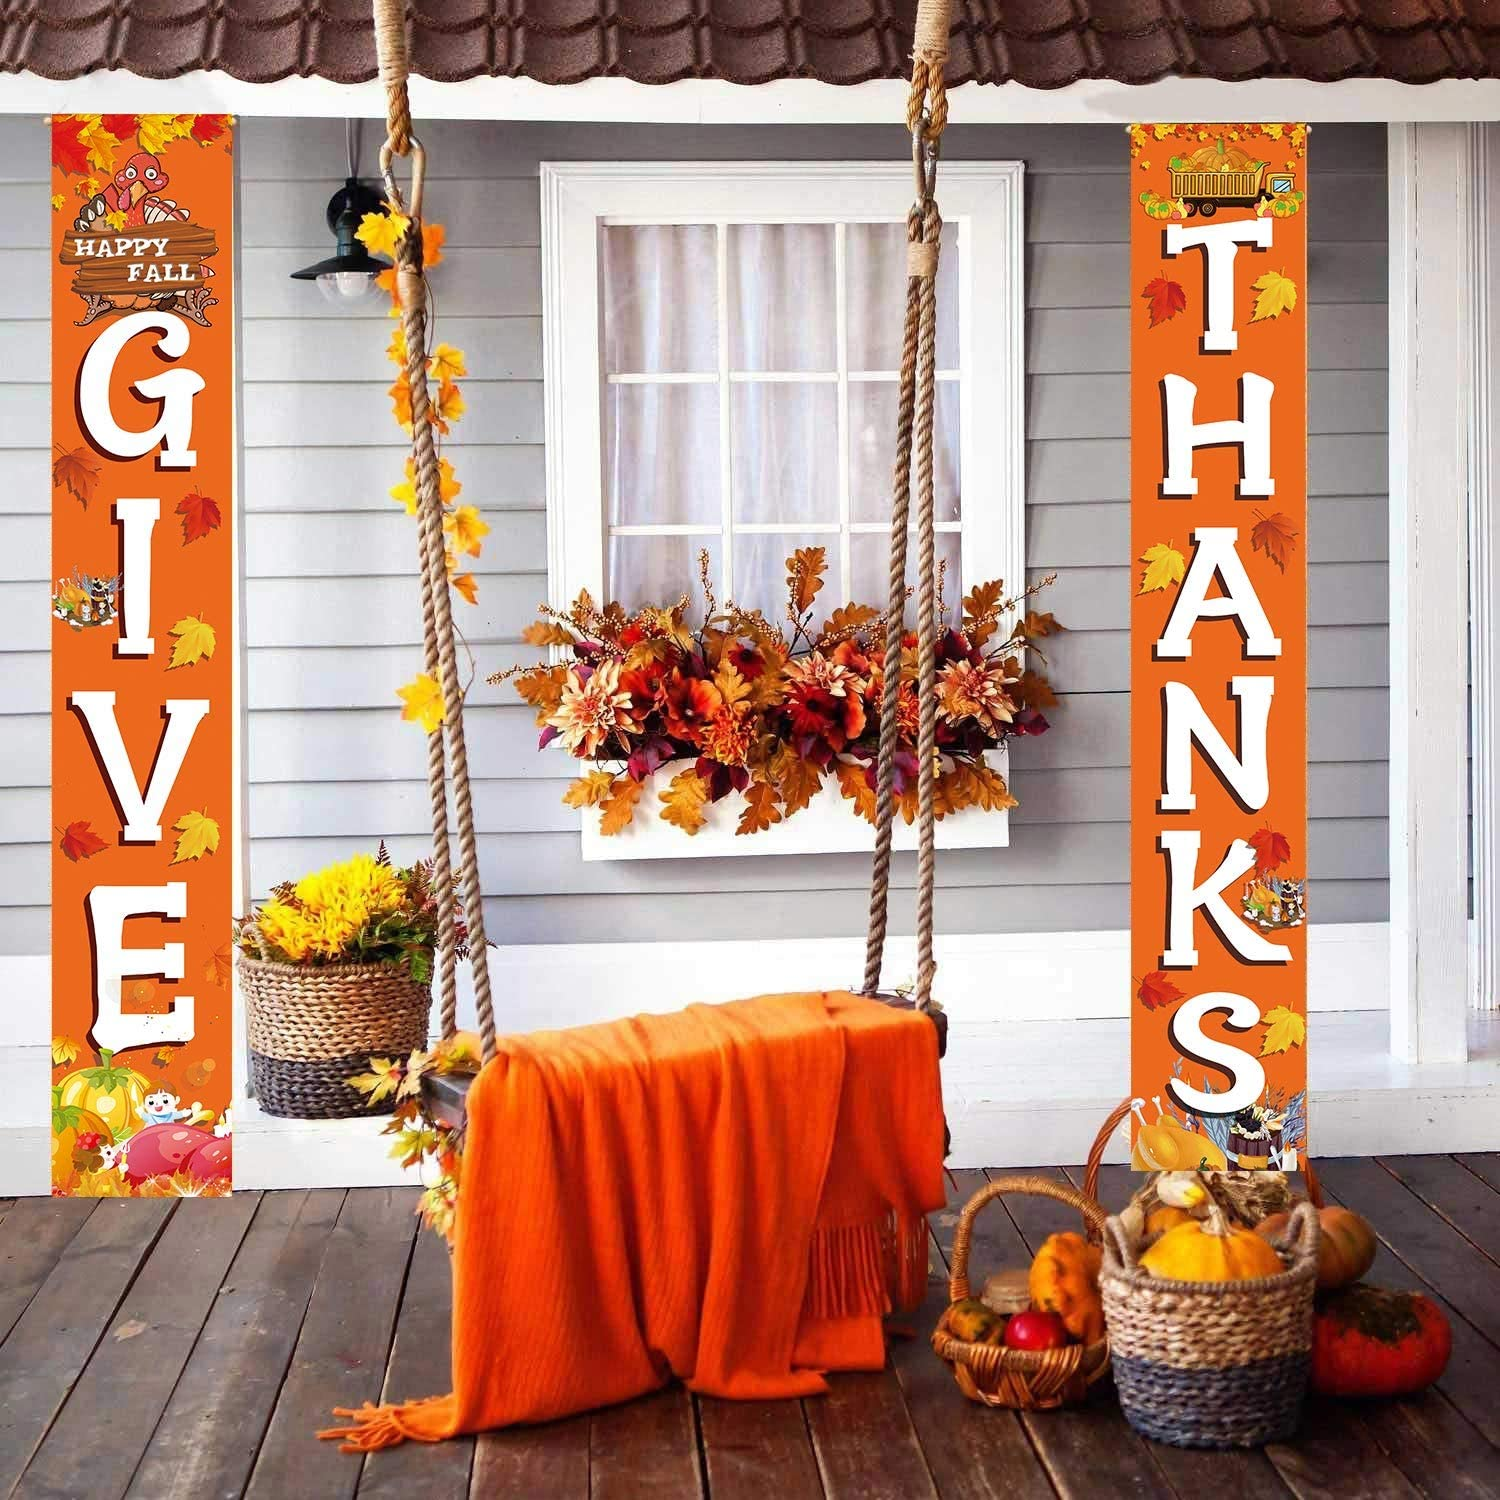 GIVE Thanks Hanging Banner Porch Sign Autumn Pumpkin Maple Leaf Backdrop Flag Fall Harvest Welcome Banner for Indoor Outdoor Wall Door Decoration Thanksgiving Party Decorations 72x12